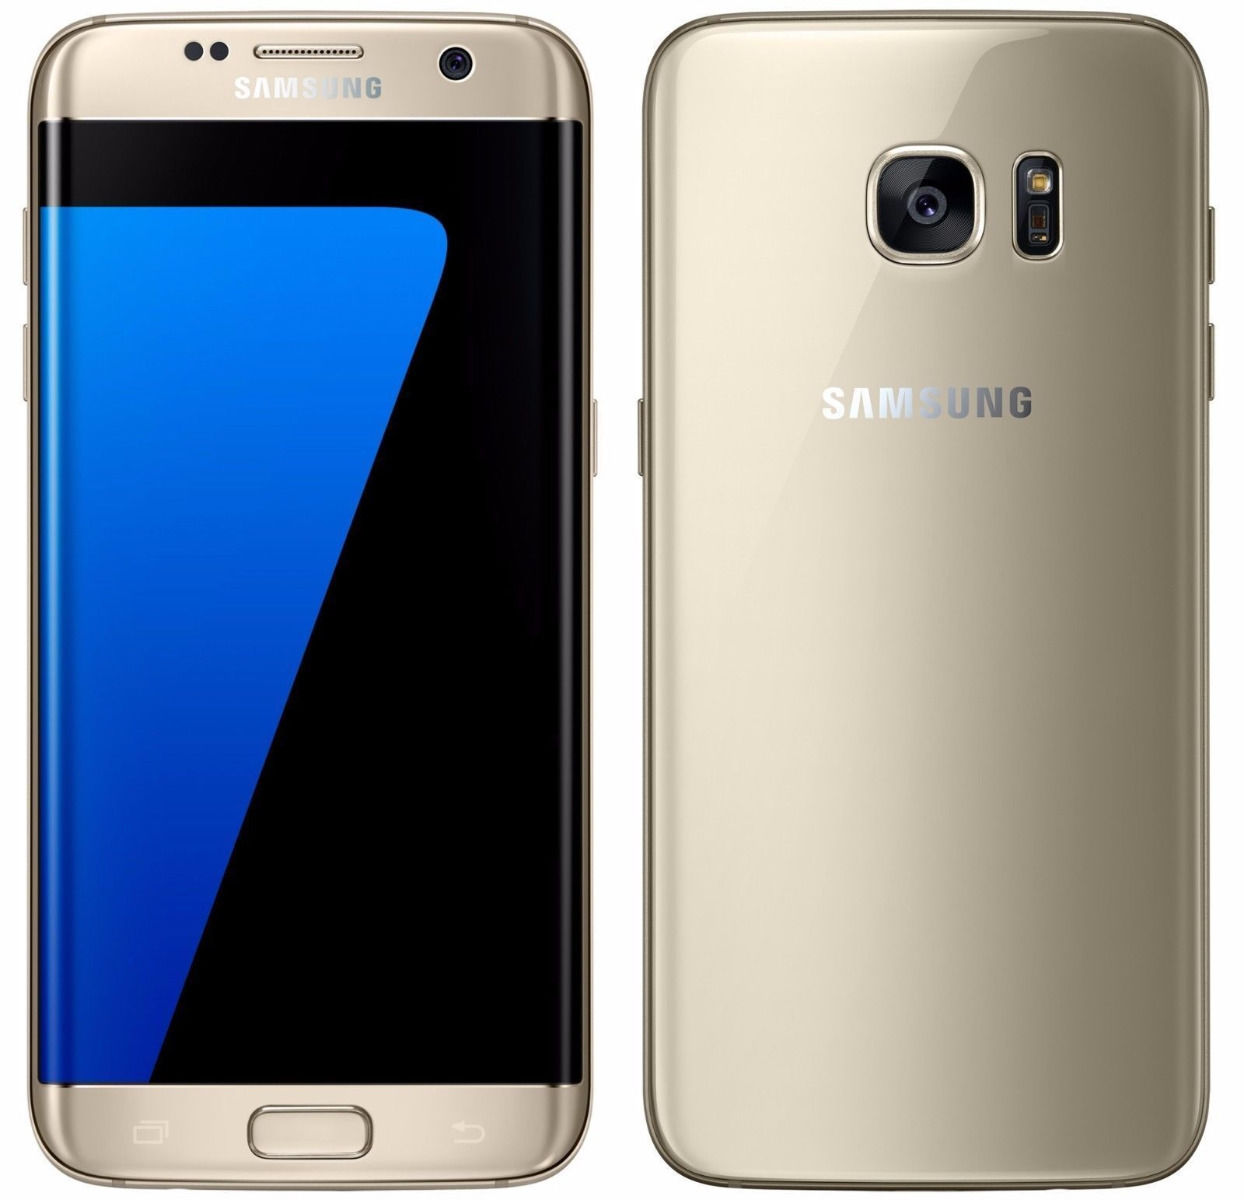 Samsung-Galaxy-S7-Edge-32GB-G935T-Unlocked-GSM-Android-Smartphone-Shadow-LCD